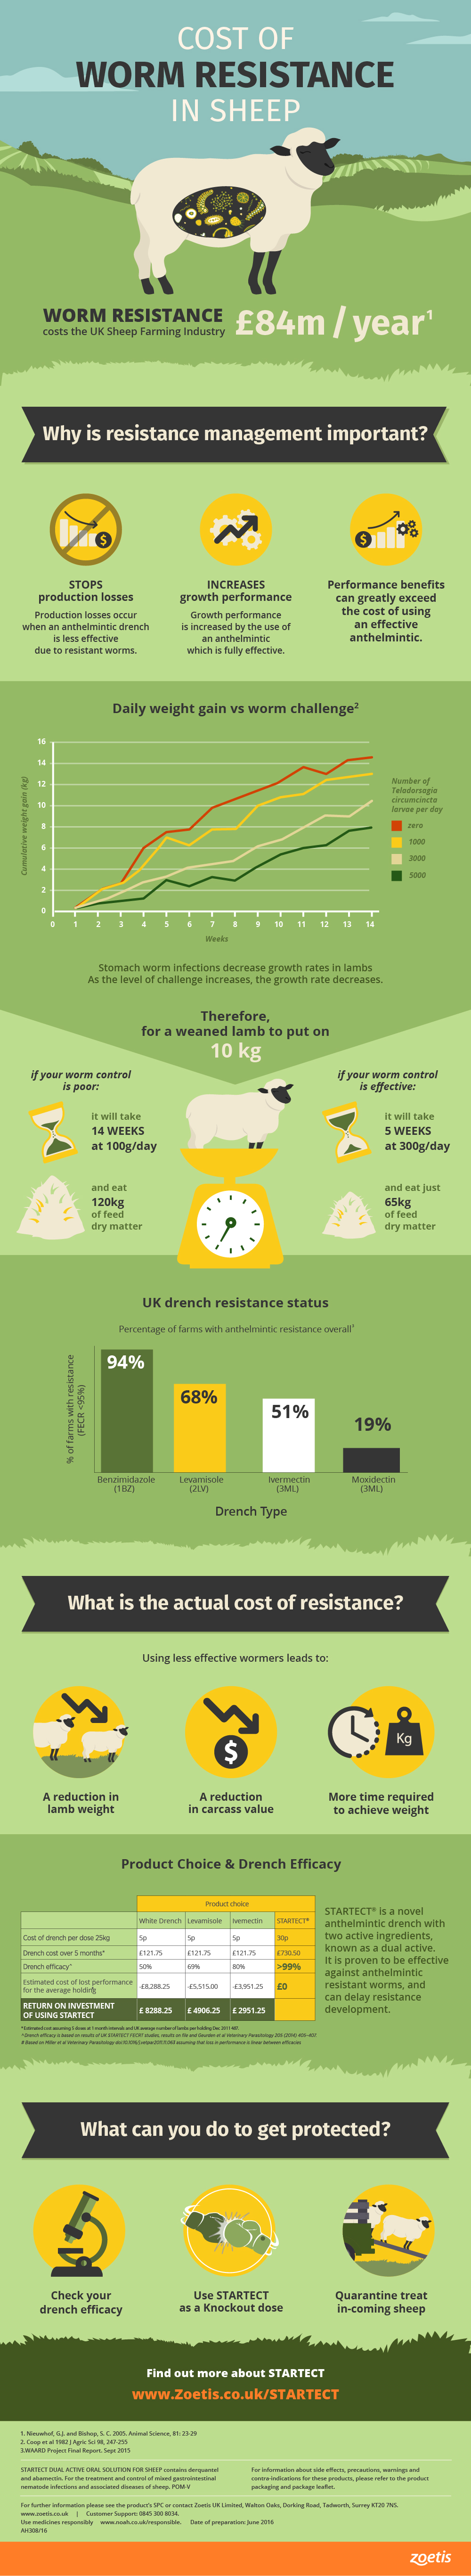 Cost of Worm Resistance in Sheep Infographic